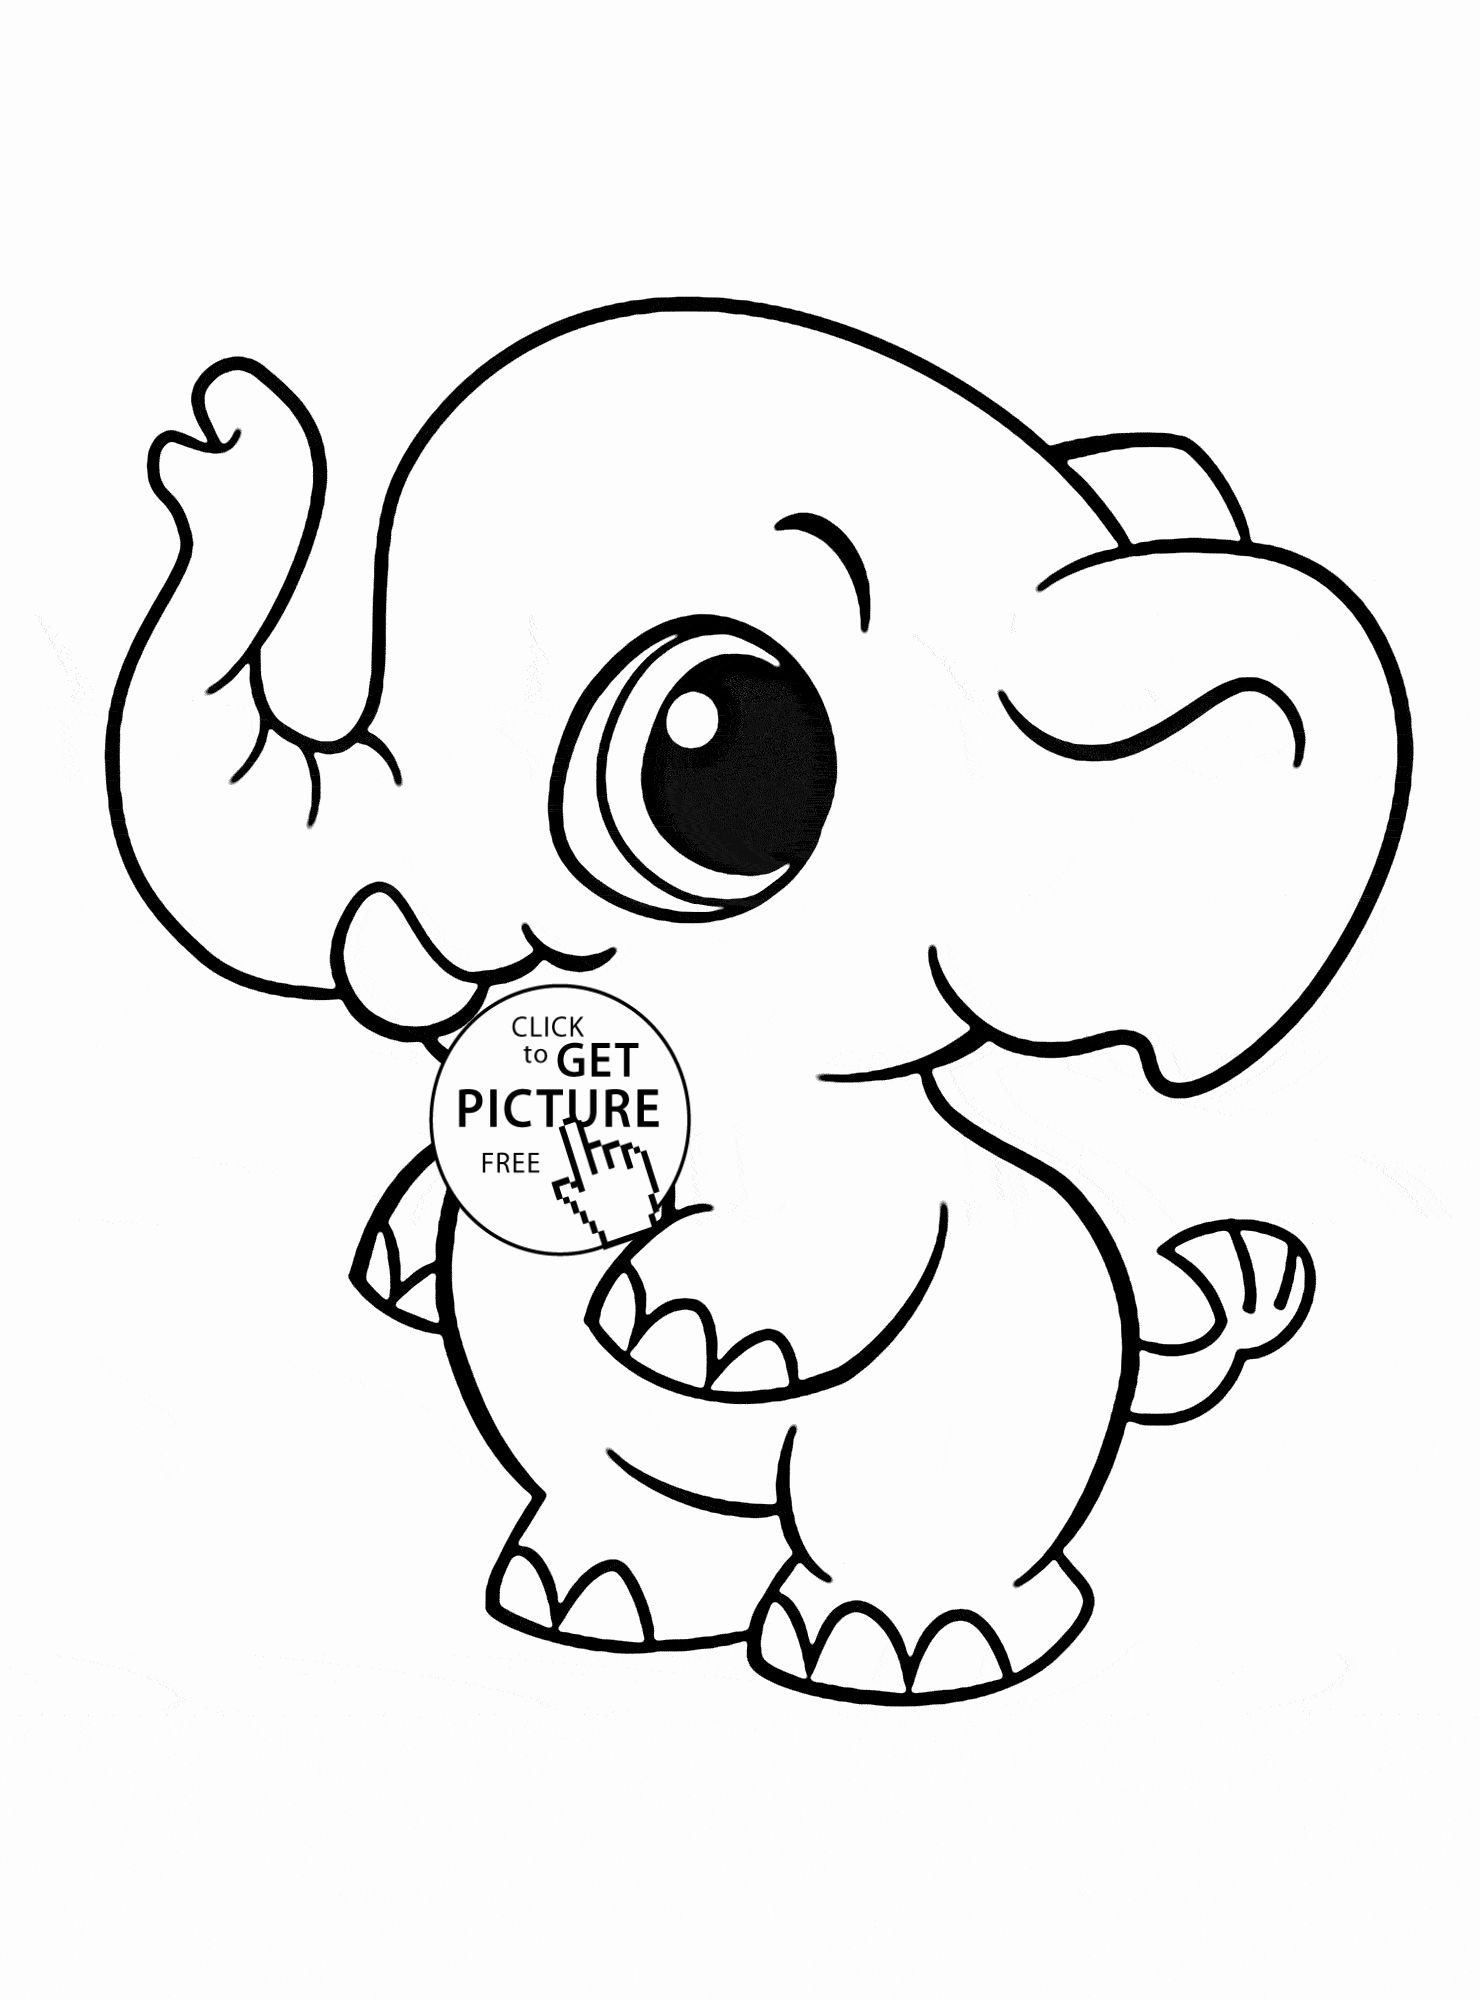 Dogs Coloring Pages Printable Awesome Funny Animals Coloring Page Cute Dog Coloring Pag In 2020 Zoo Animal Coloring Pages Unicorn Coloring Pages Elephant Coloring Page